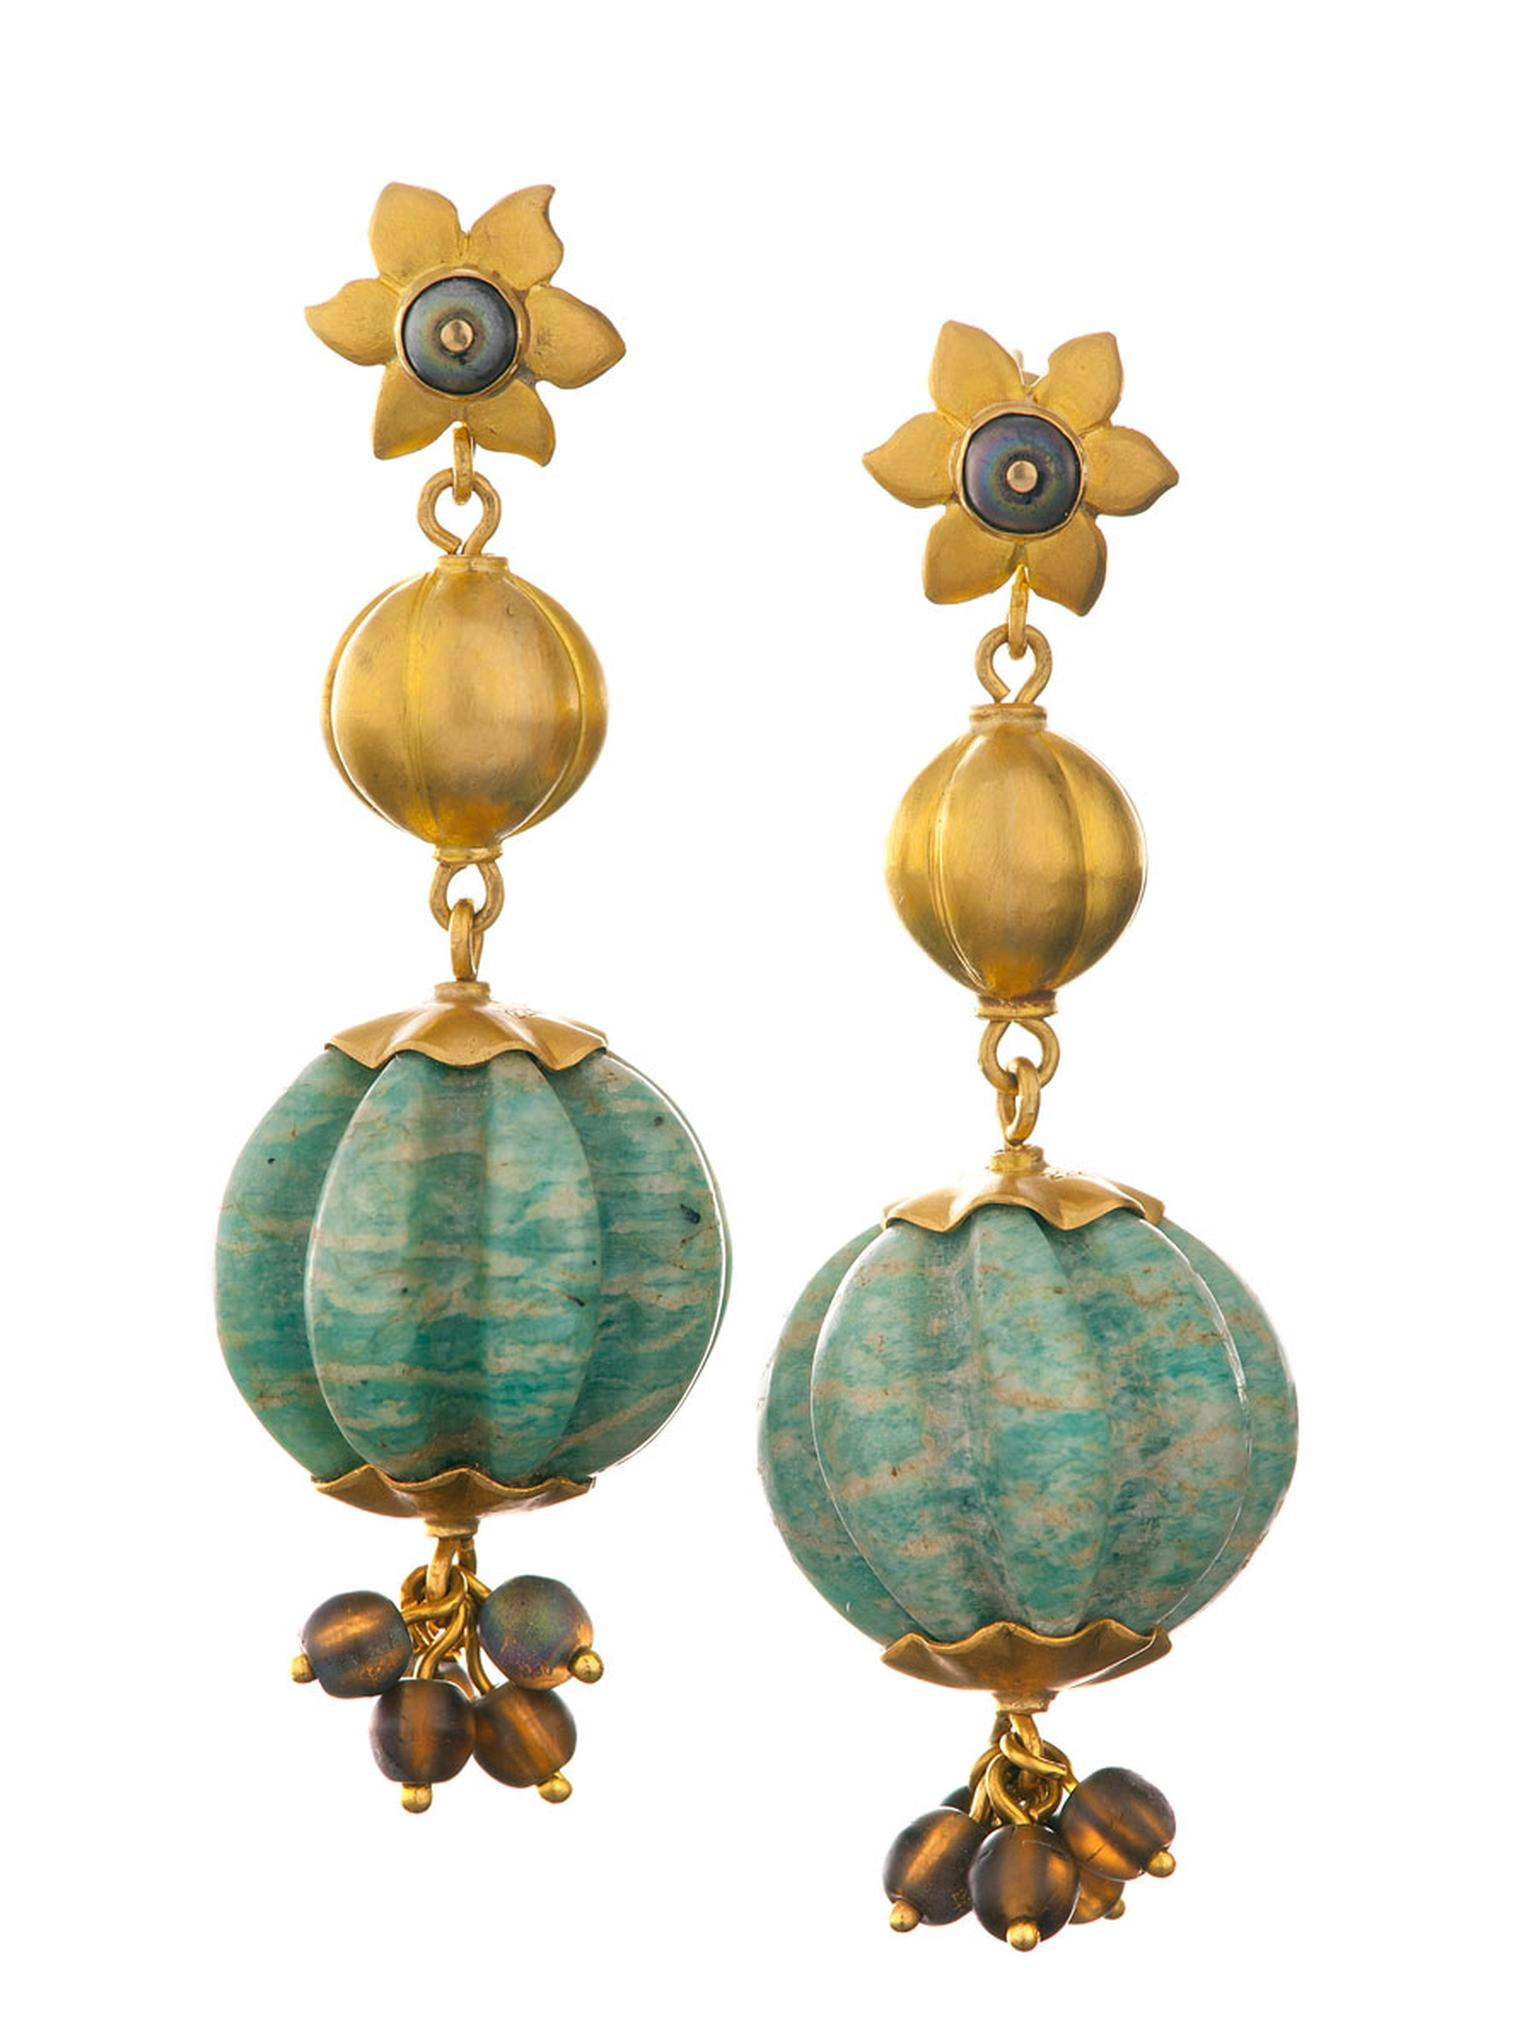 Lisa-Black-Turquoise-and-Gold-Melon-Bead-Earrings.jpg